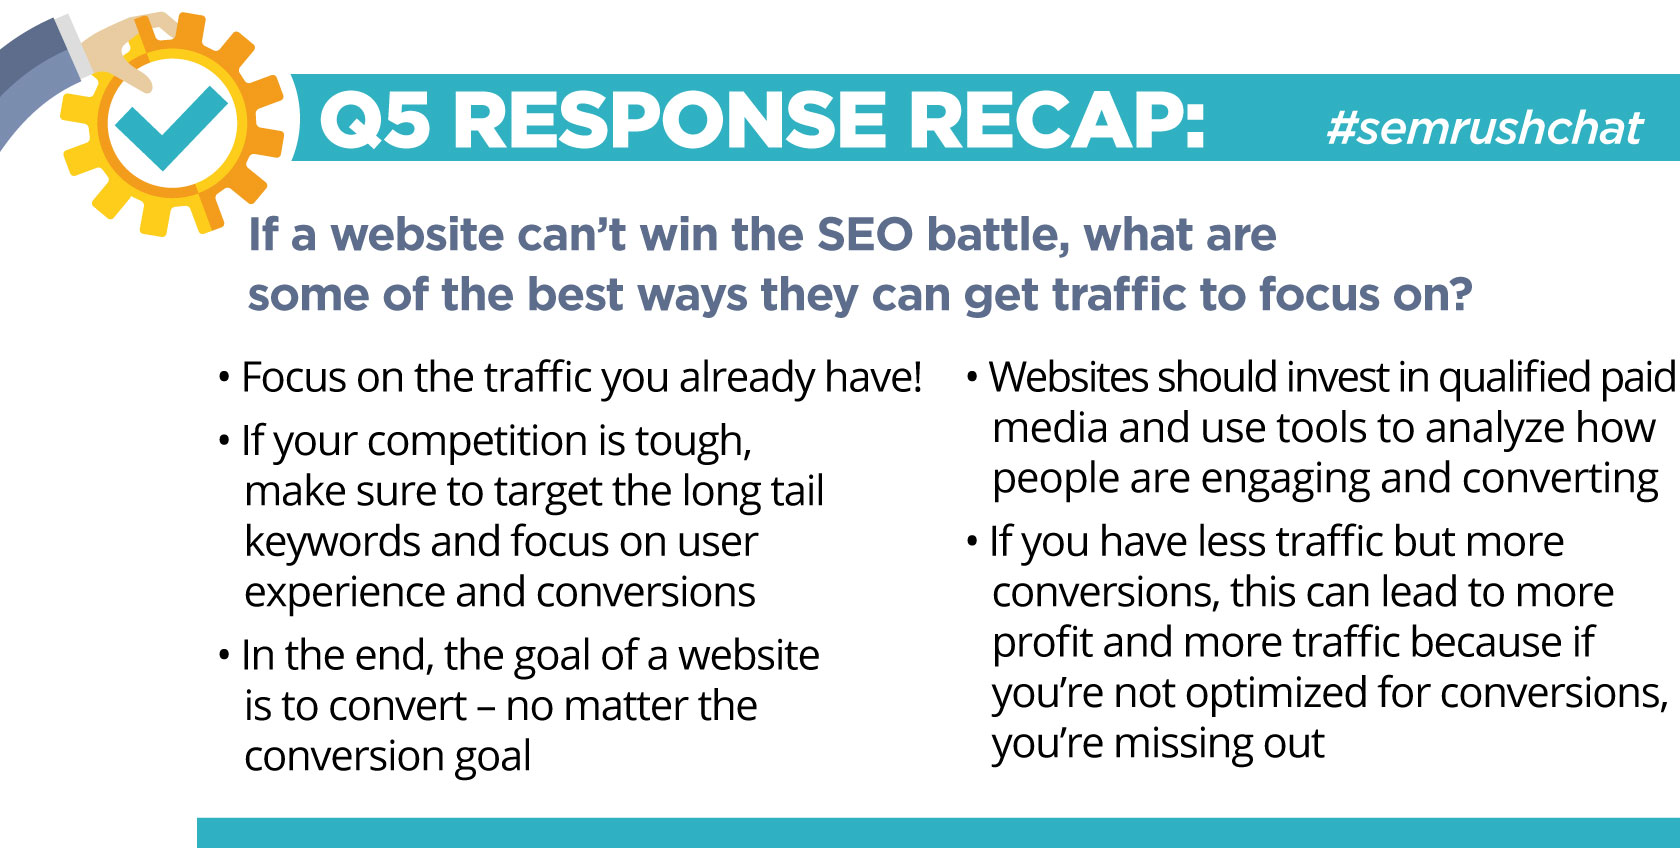 Technical SEO Wins And Quick Fixes #semrushchat. Image 4